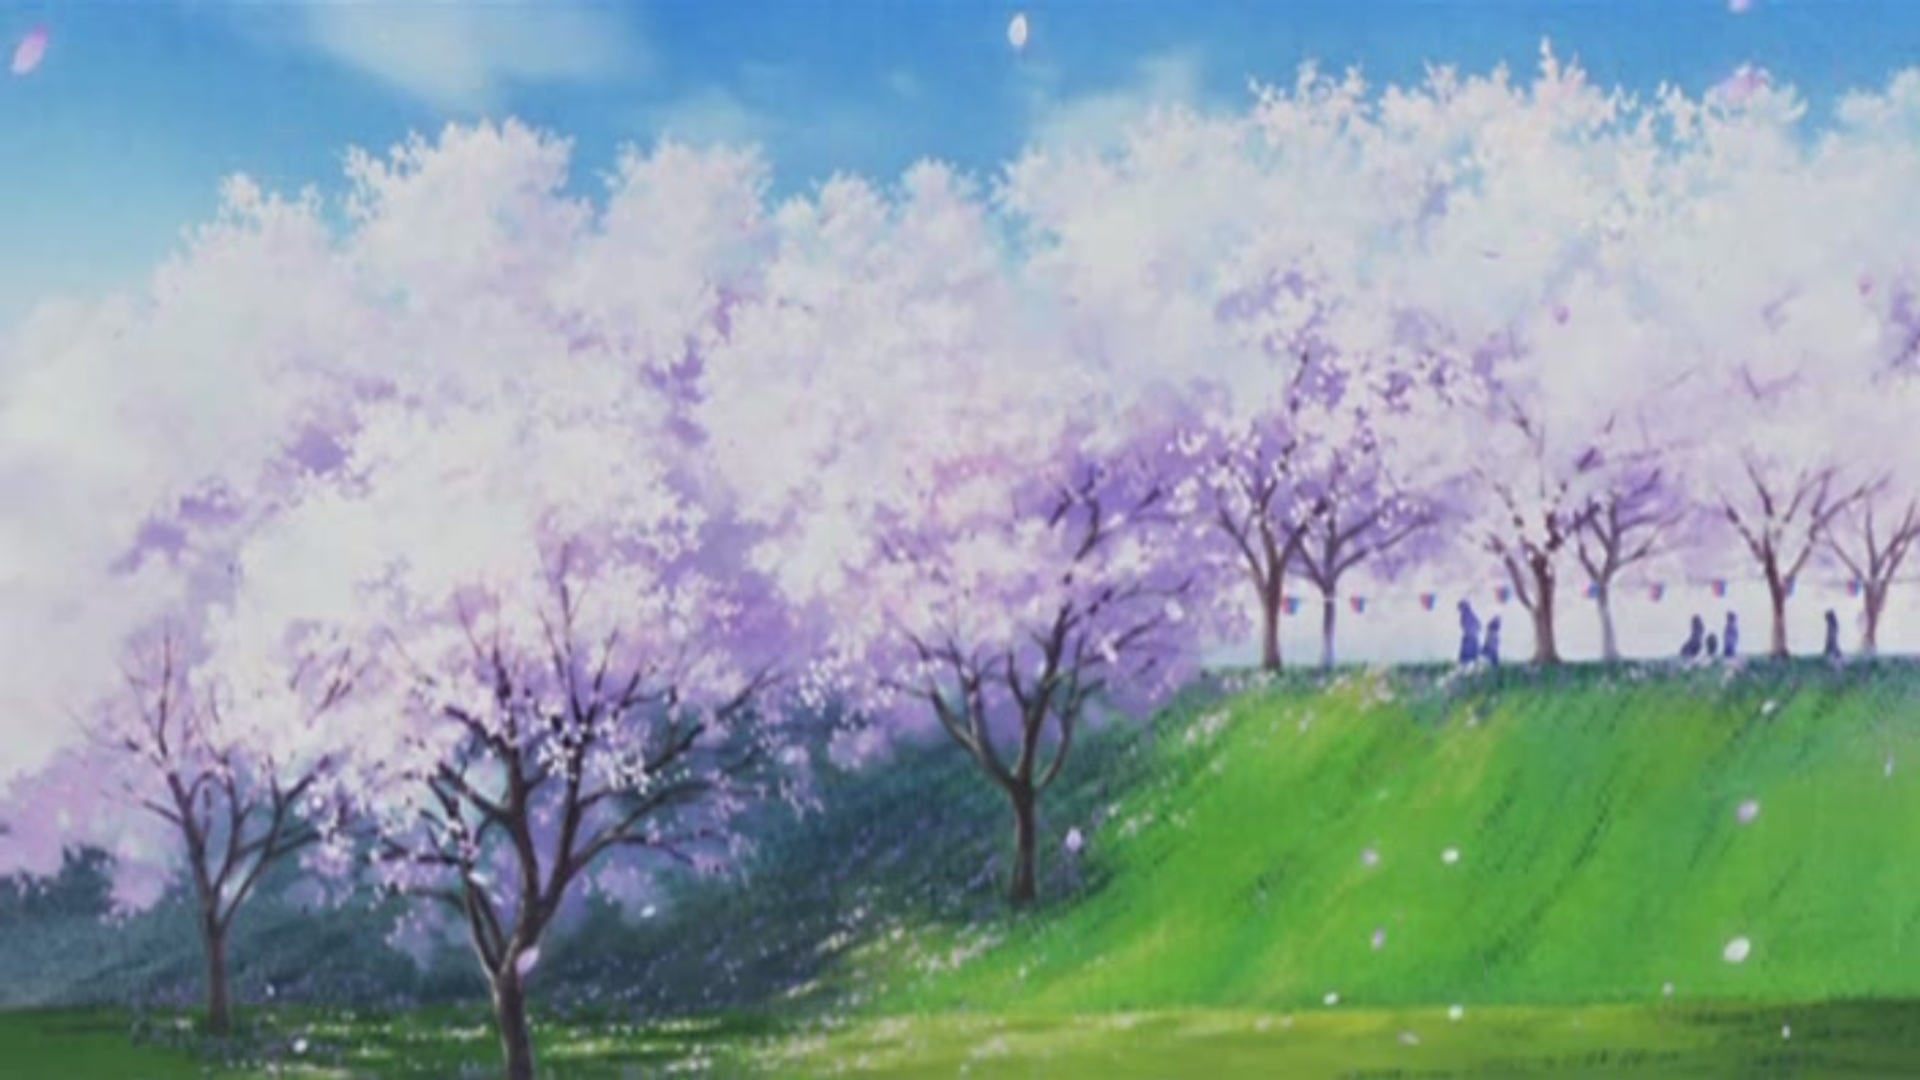 Anime Scenery Wallpaper Download HD Wallpapers 1920x1080